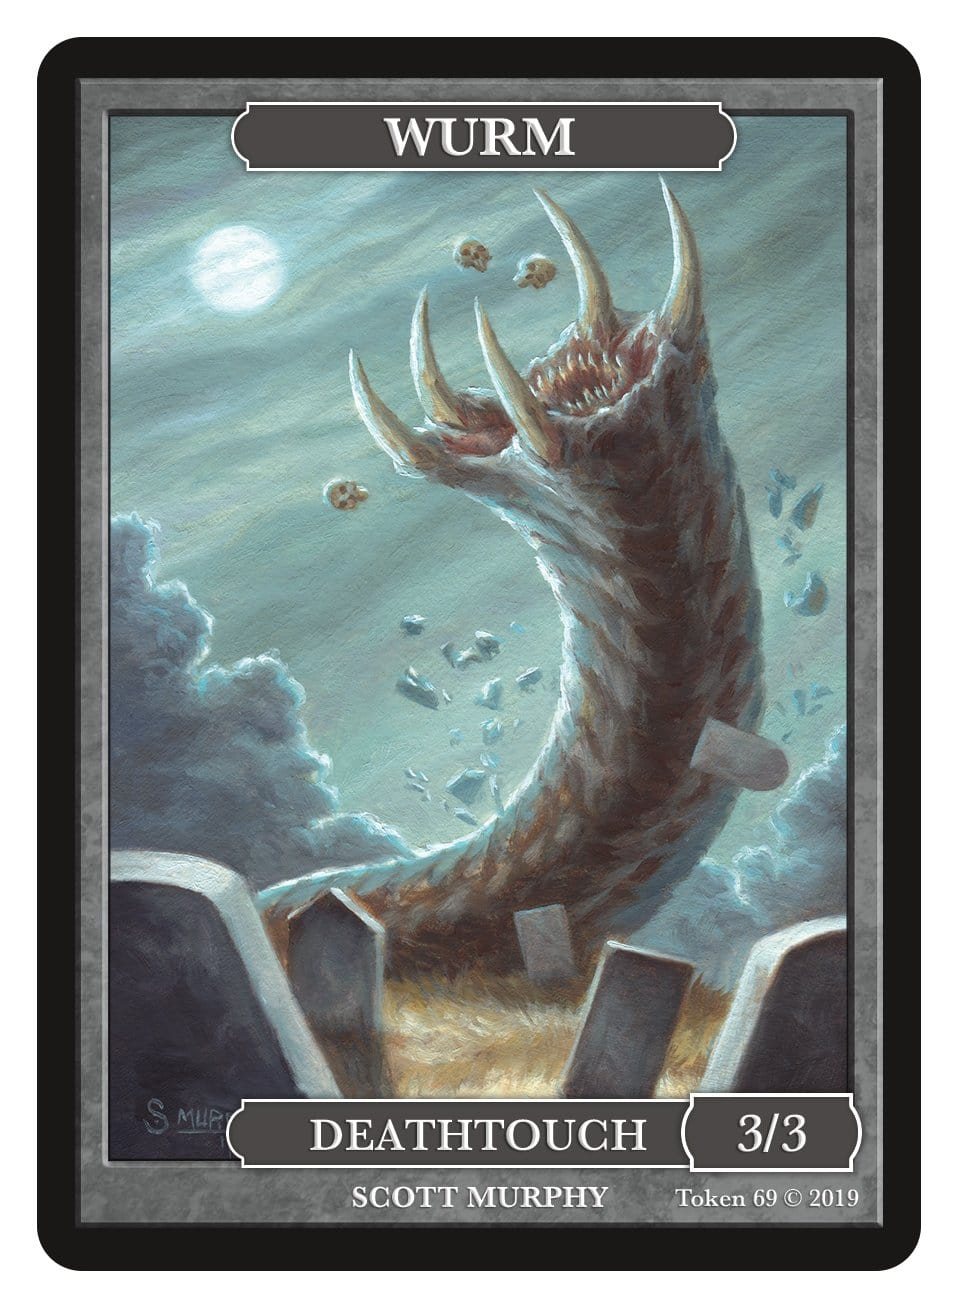 Wurm Token (3/3 - Deathtouch) by Scott Murphy - Token - Original Magic Art - Accessories for Magic the Gathering and other card games